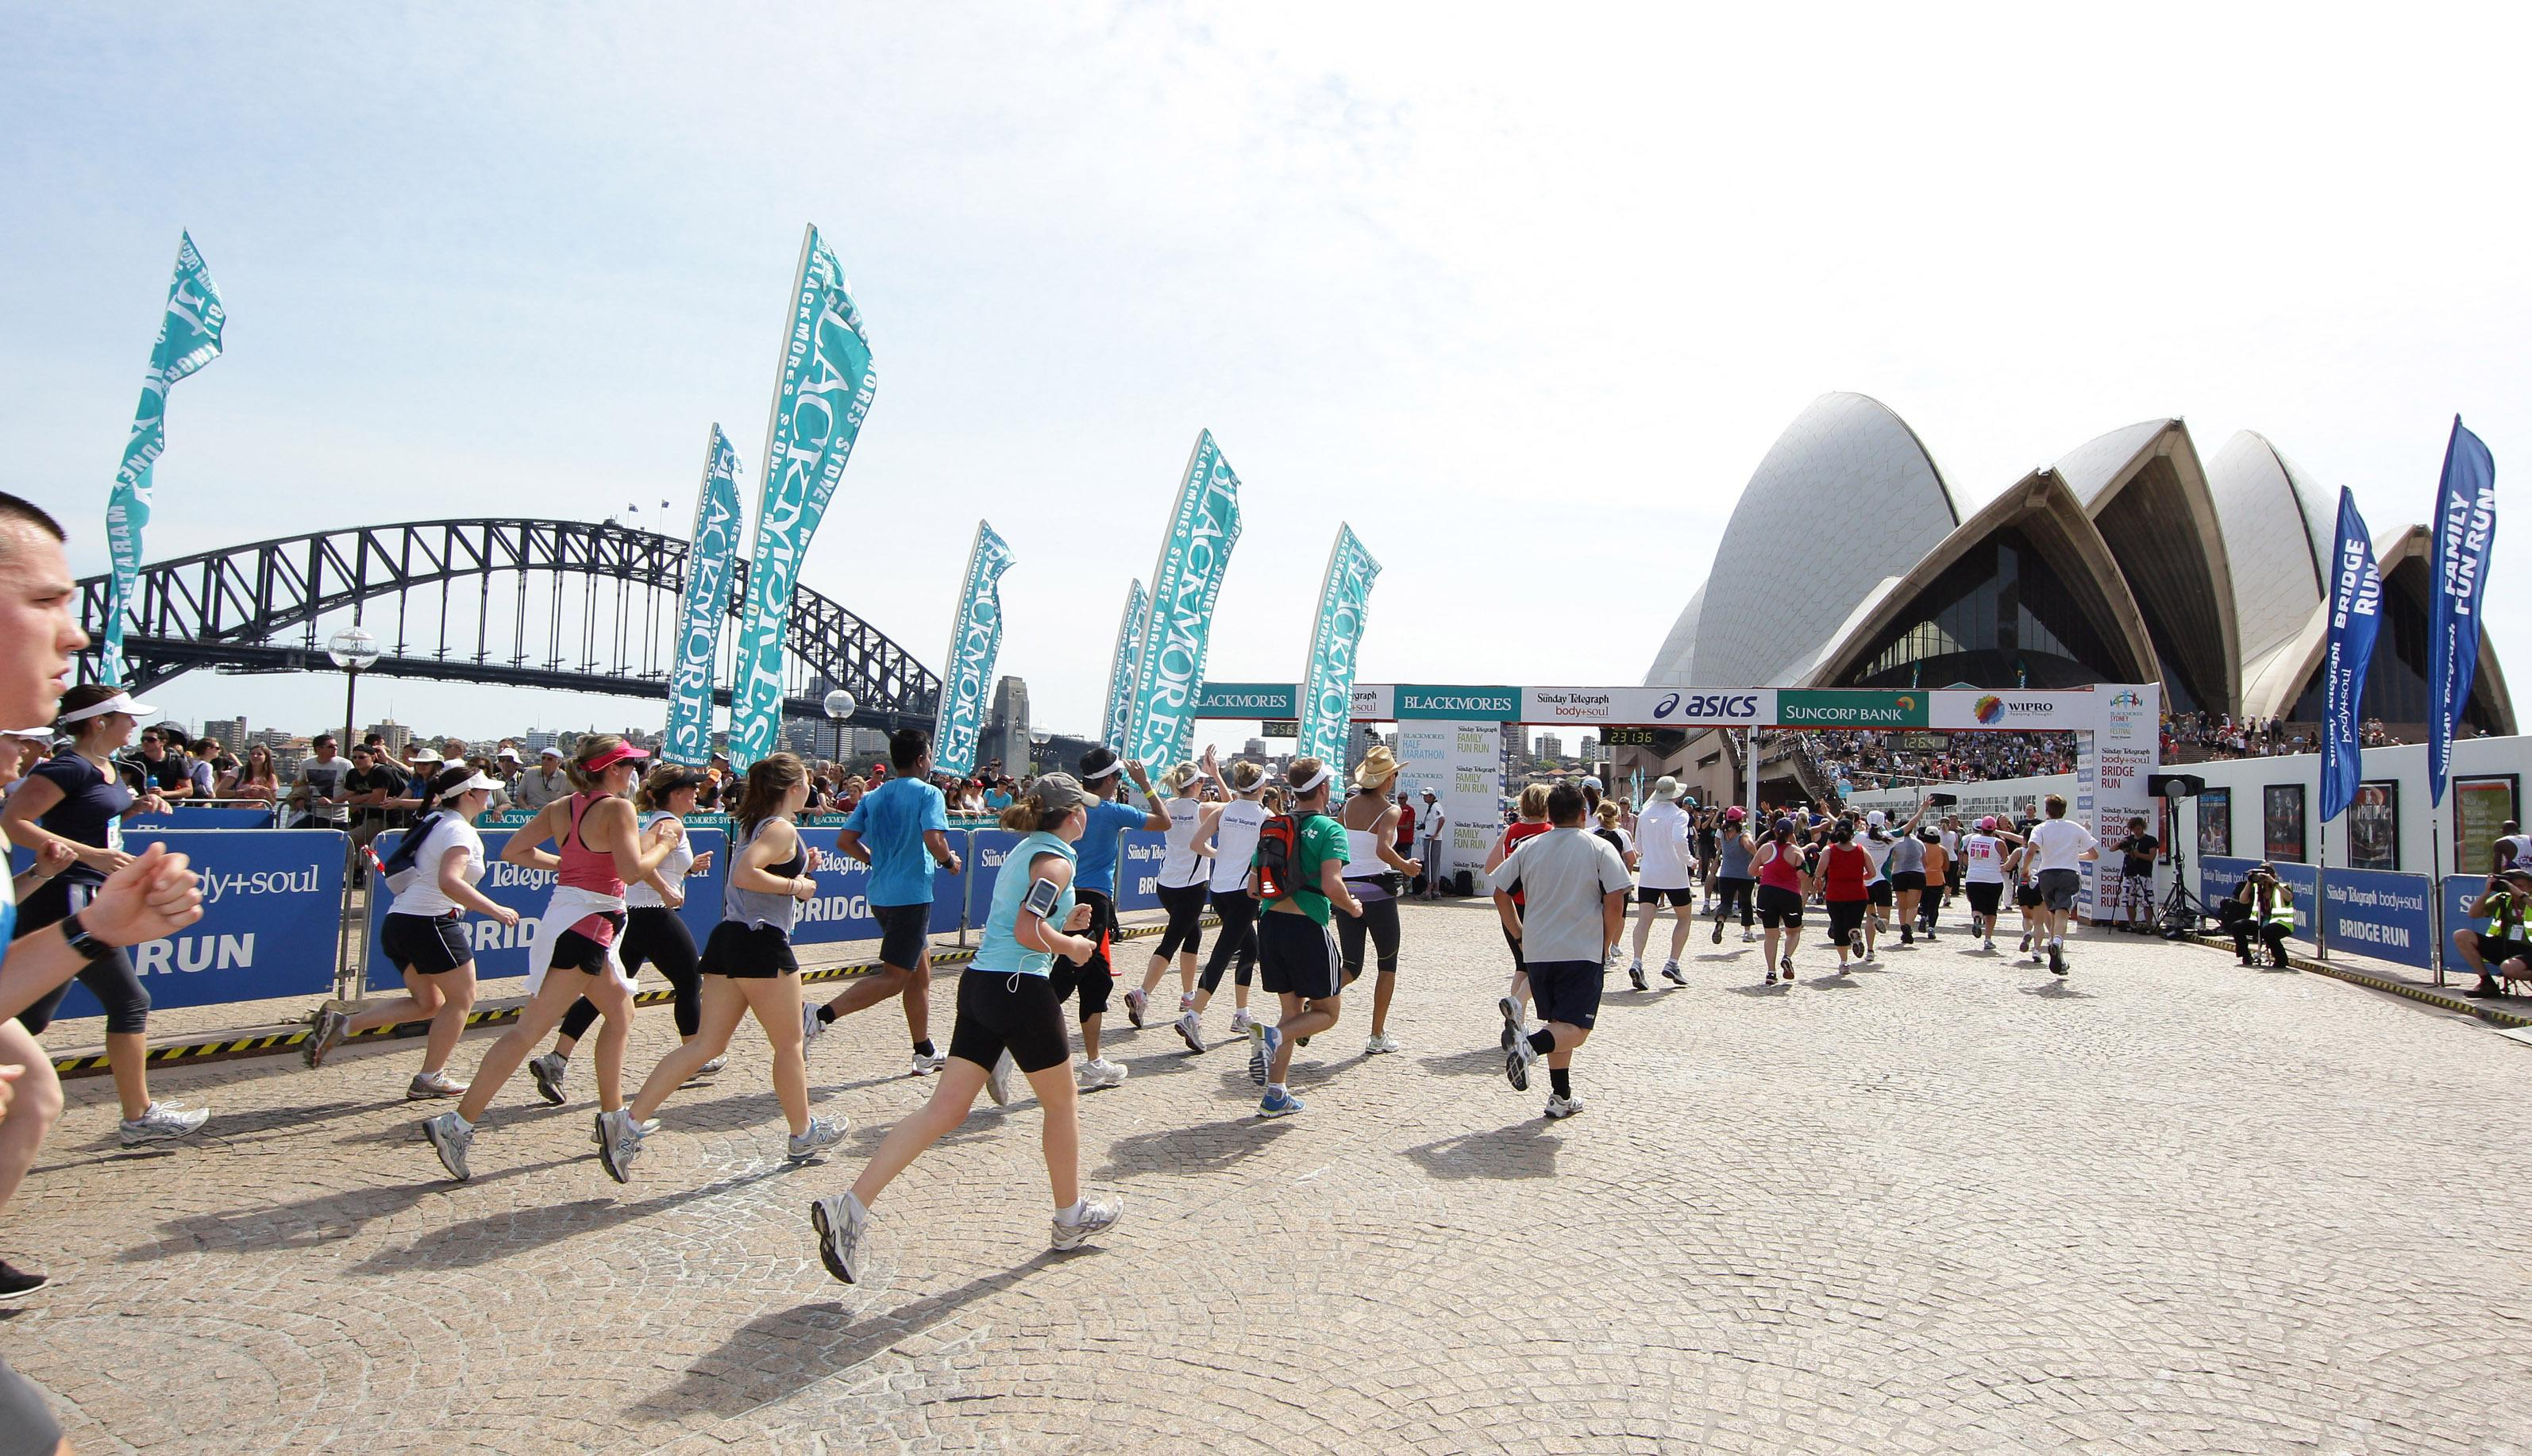 Man collapses just 300 metres from finish line of Sydney marathon